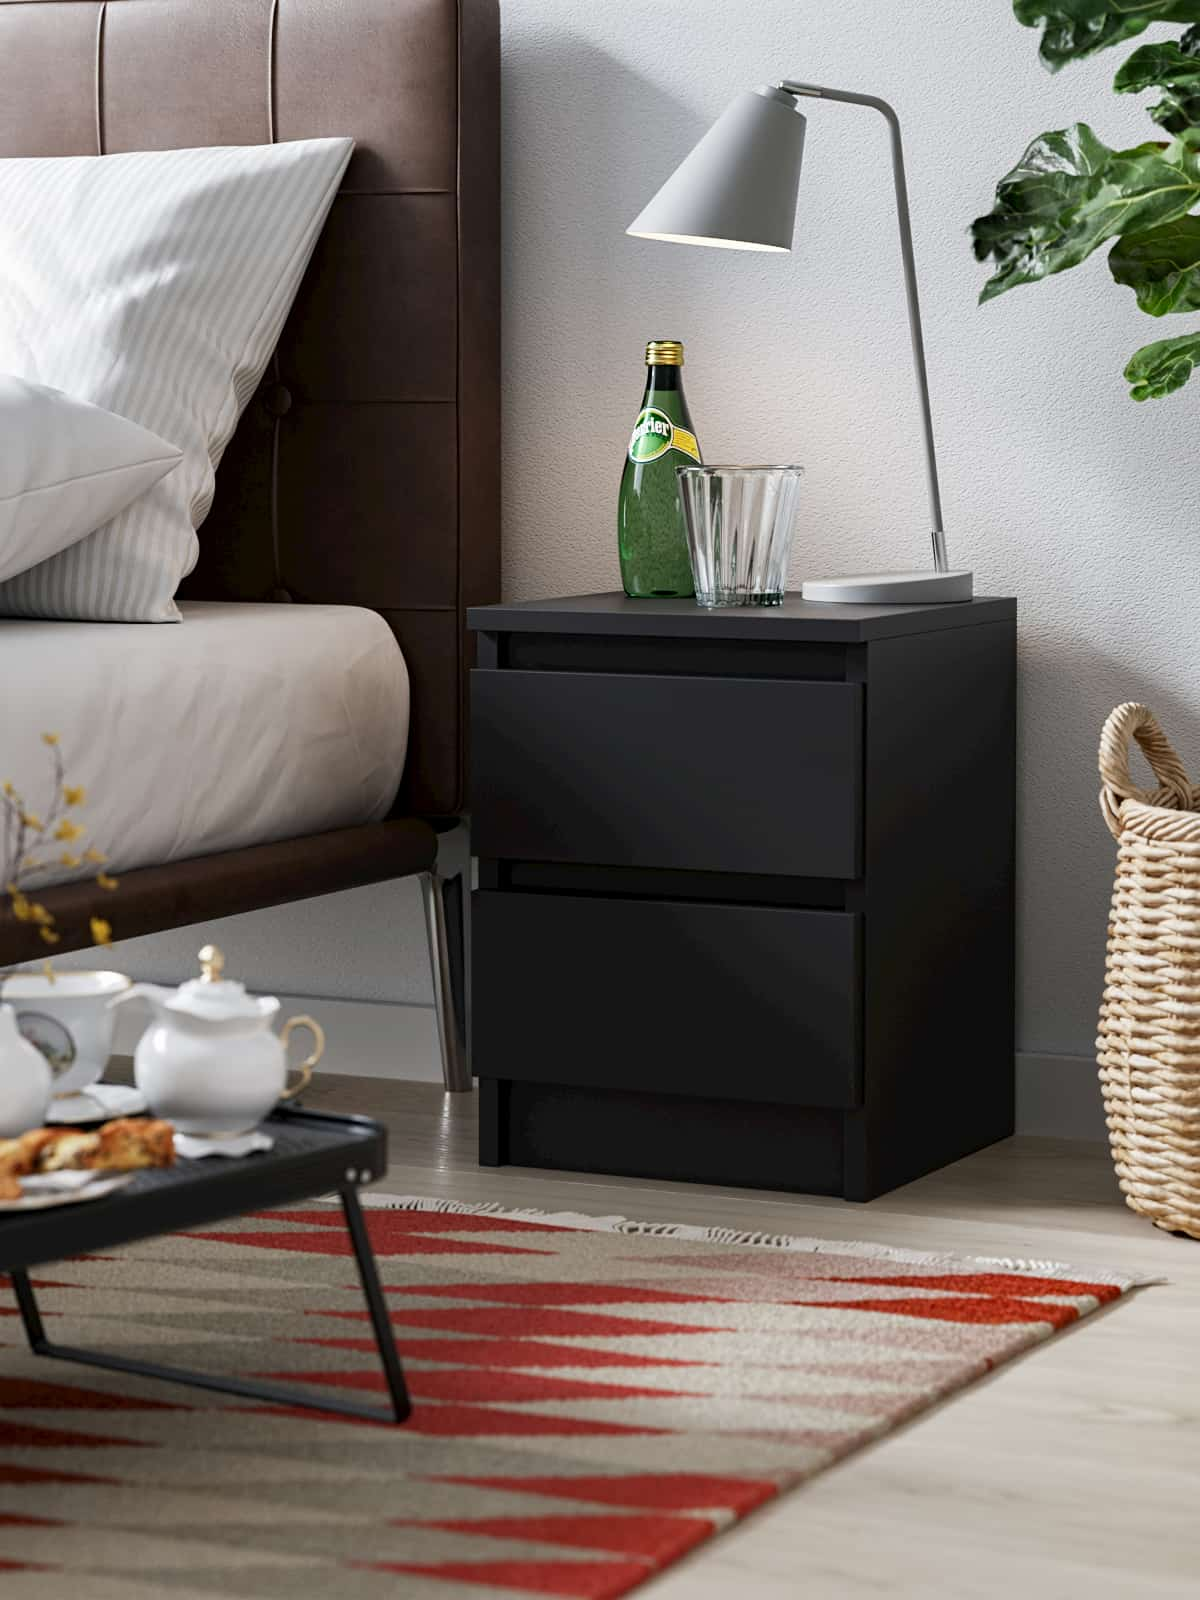 Bedside set of 2 Cabinet Pari 2  Black